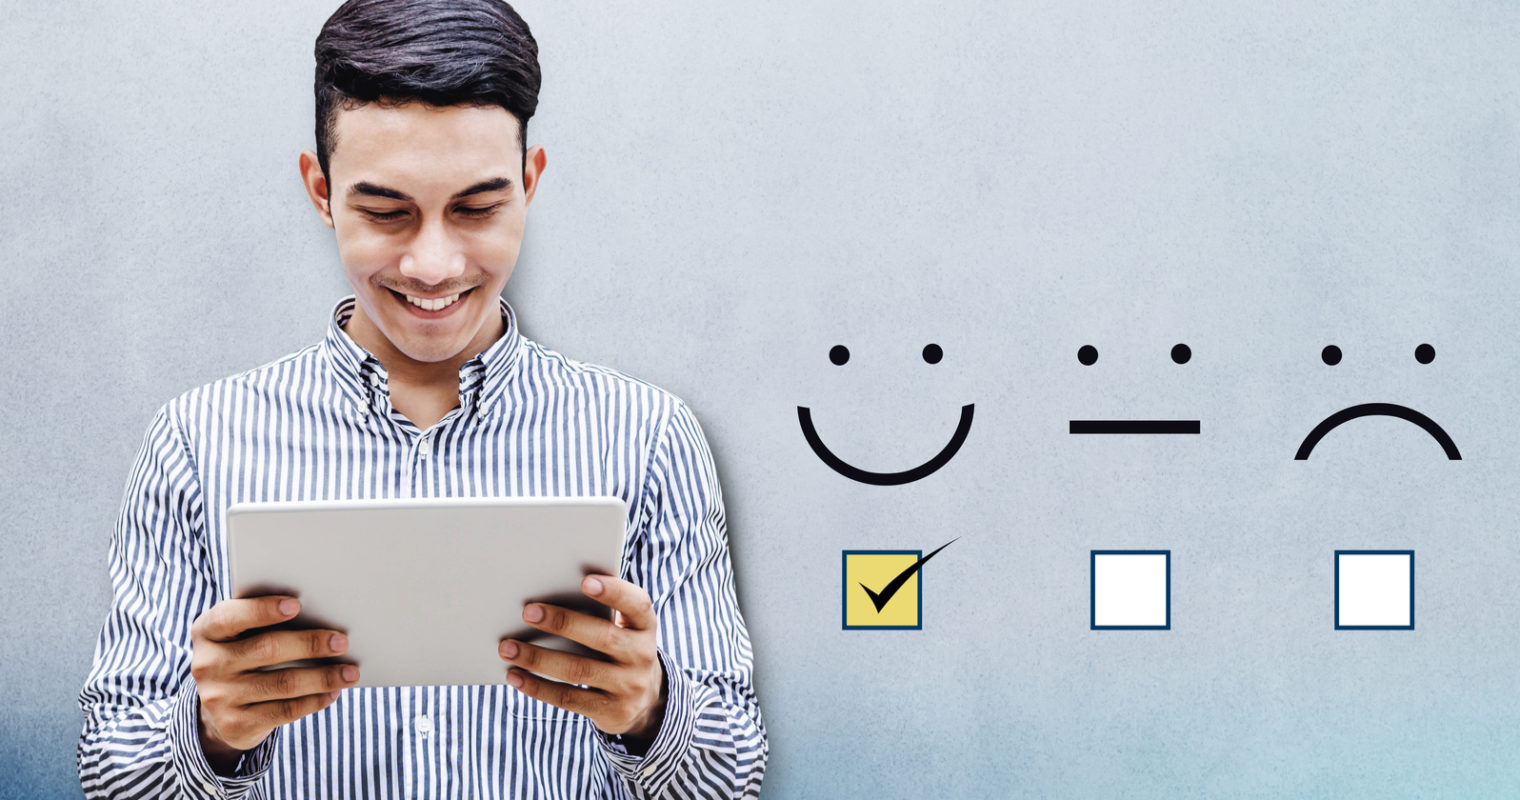 Less Than 1% of Customers Leave Feedback for Businesses